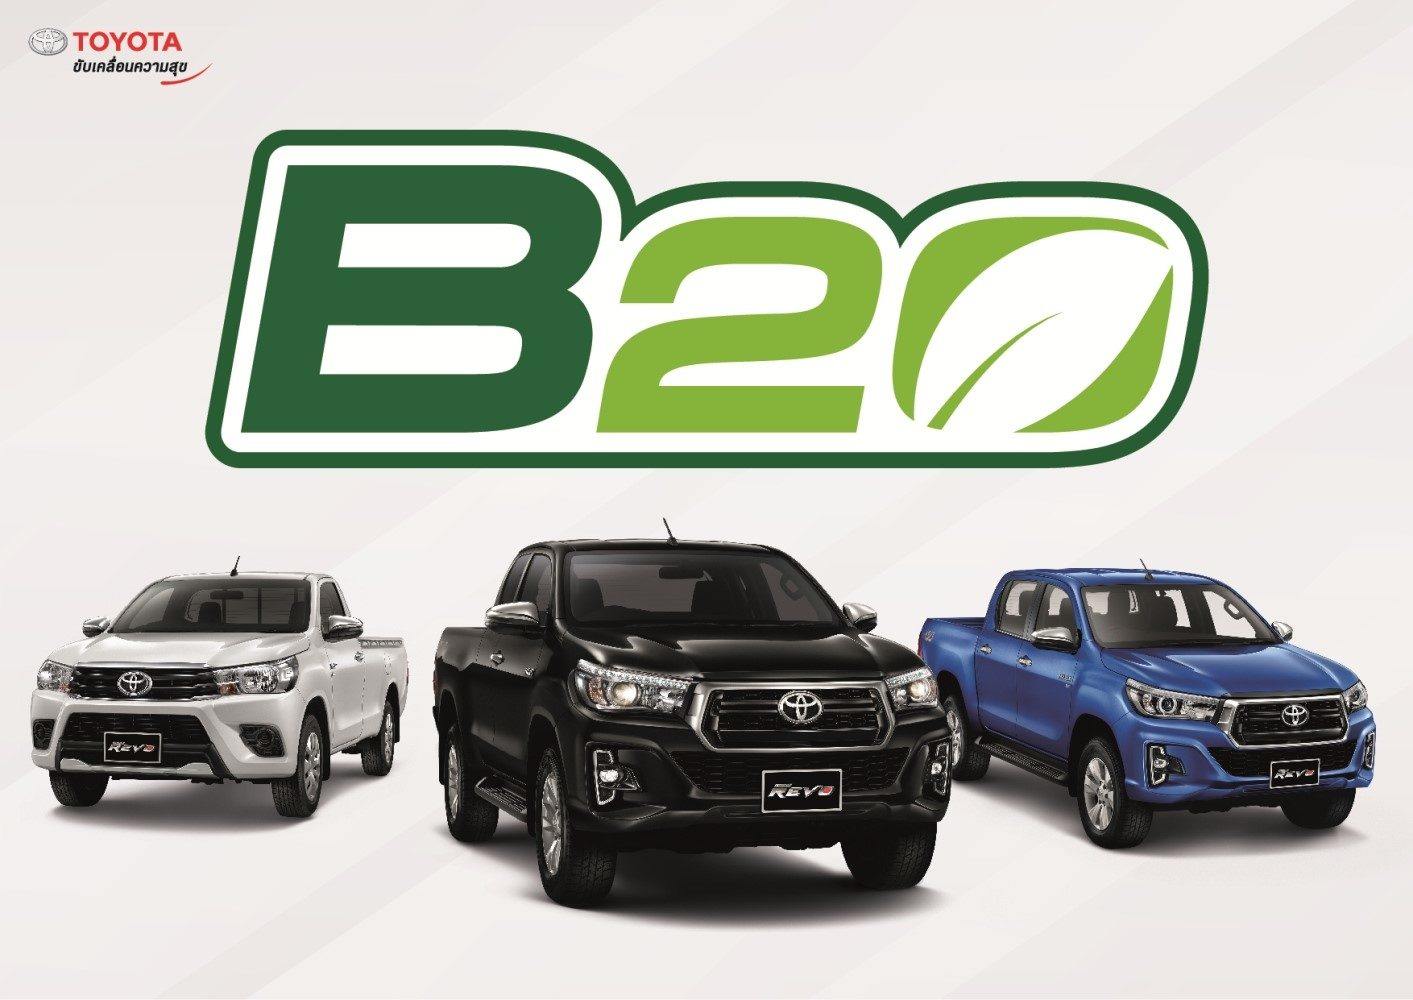 Toyota responds to the B20 policy, confirming its availability  Join